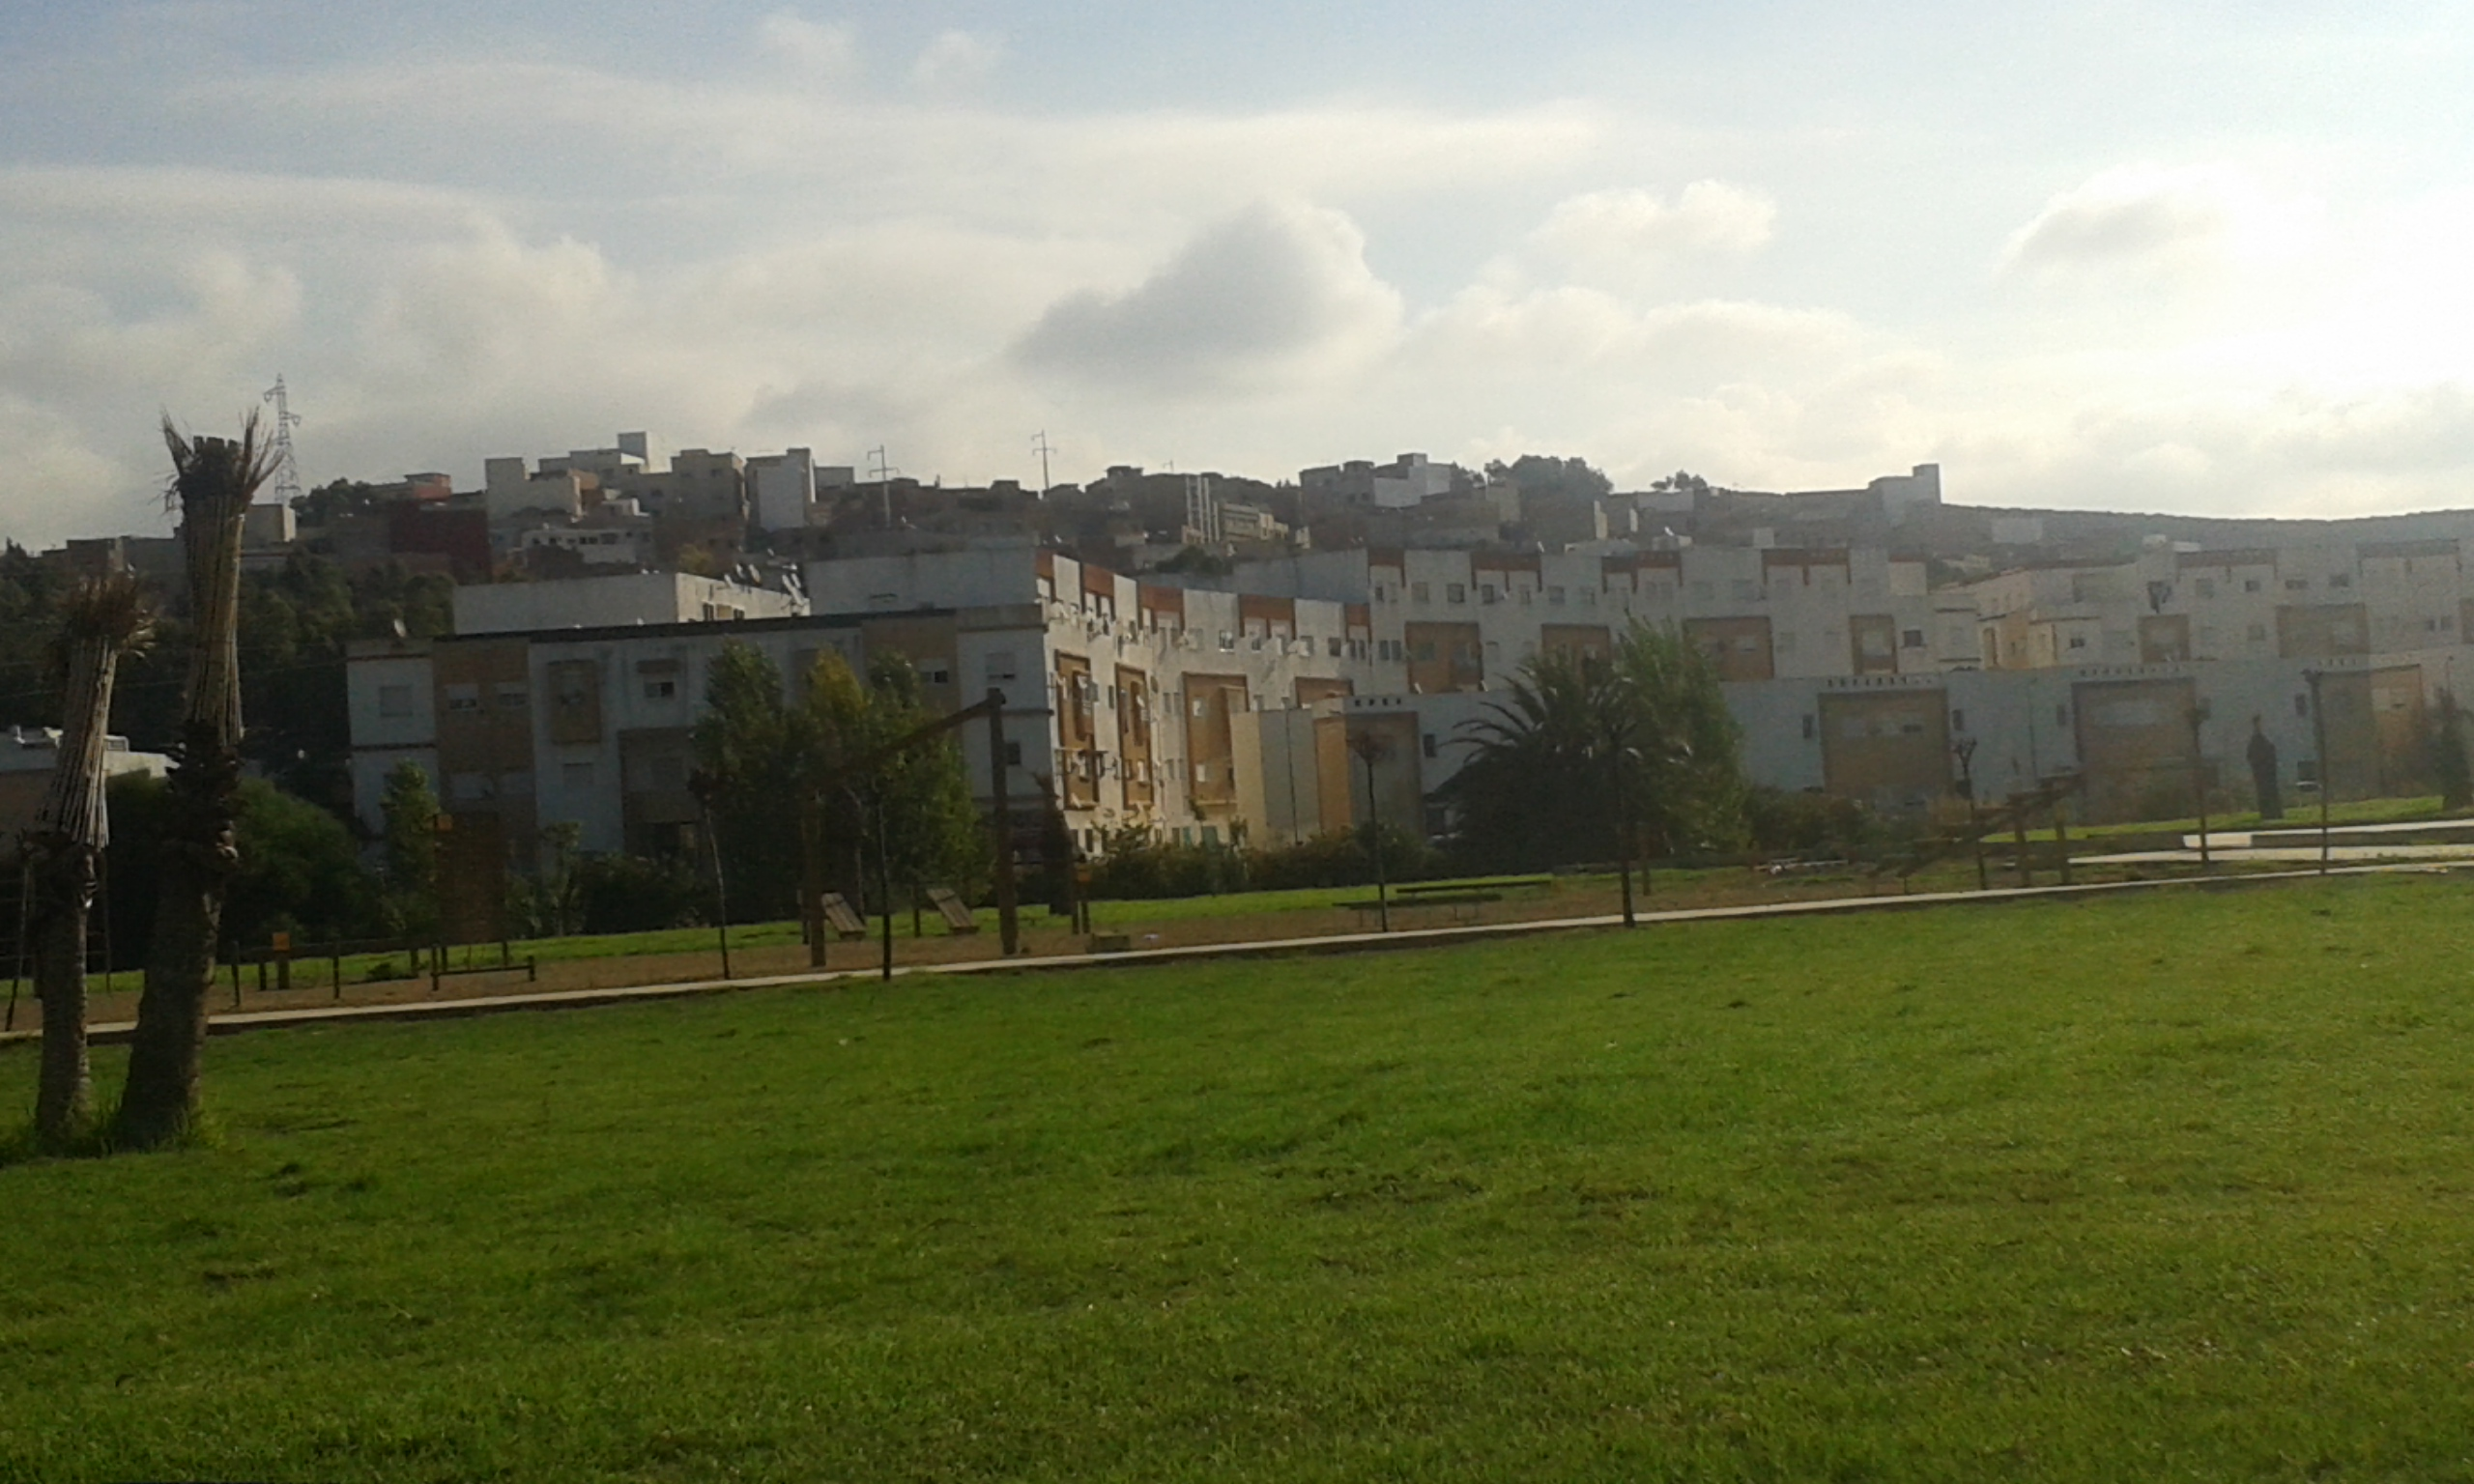 Appartement a vendre|achat|Tanger